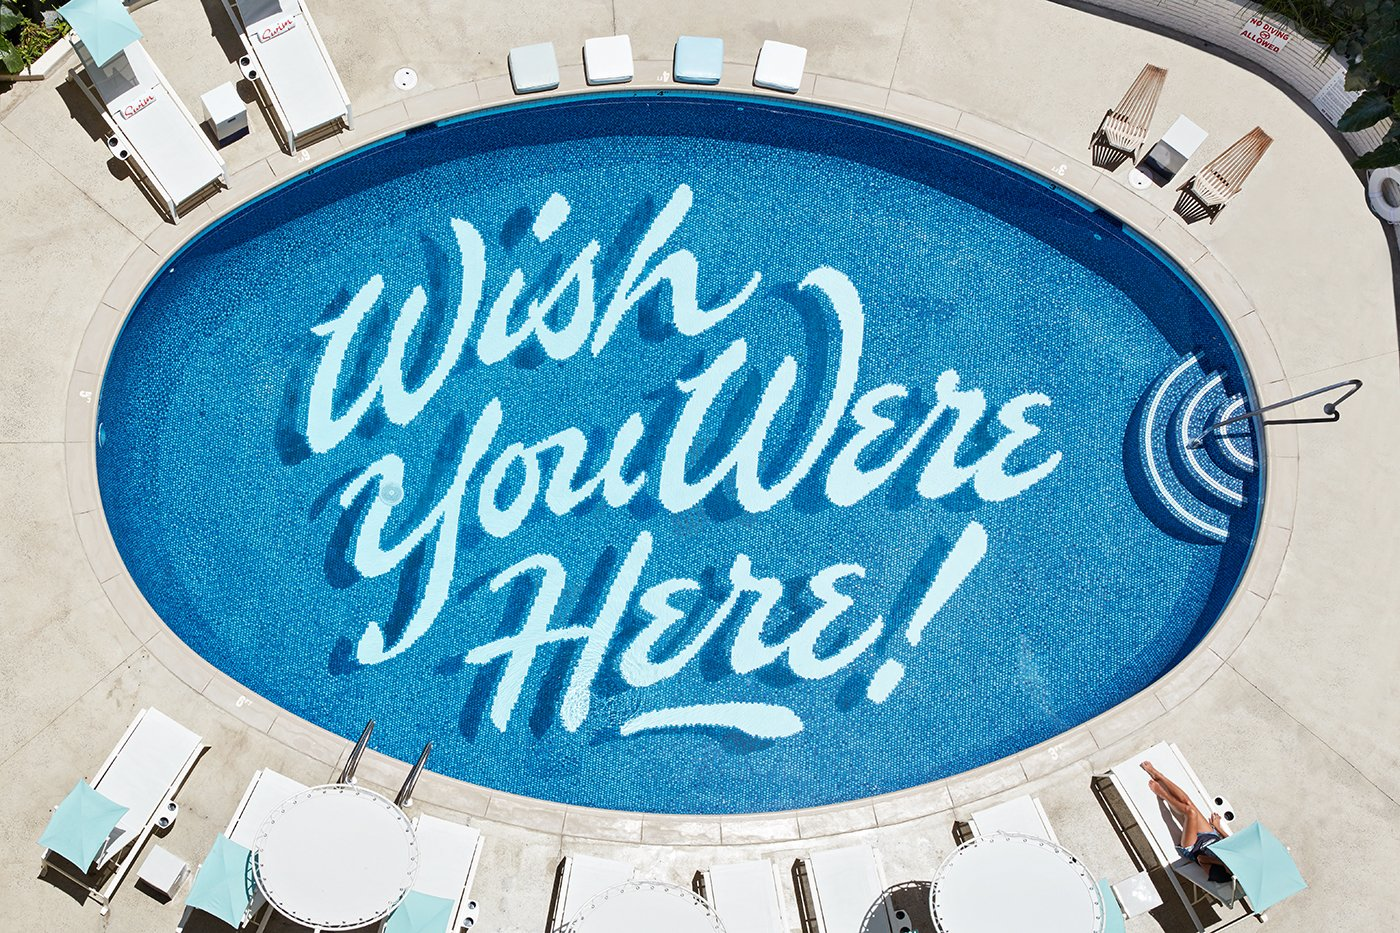 Self-taught graphic artist Matthew Tapia hand-painted the illustrated text on the bottom of the pool.  Photo 5 of 14 in This Surf-Inspired Hotel Celebrates Waikiki's Creative Spirit and its Midcentury Roots